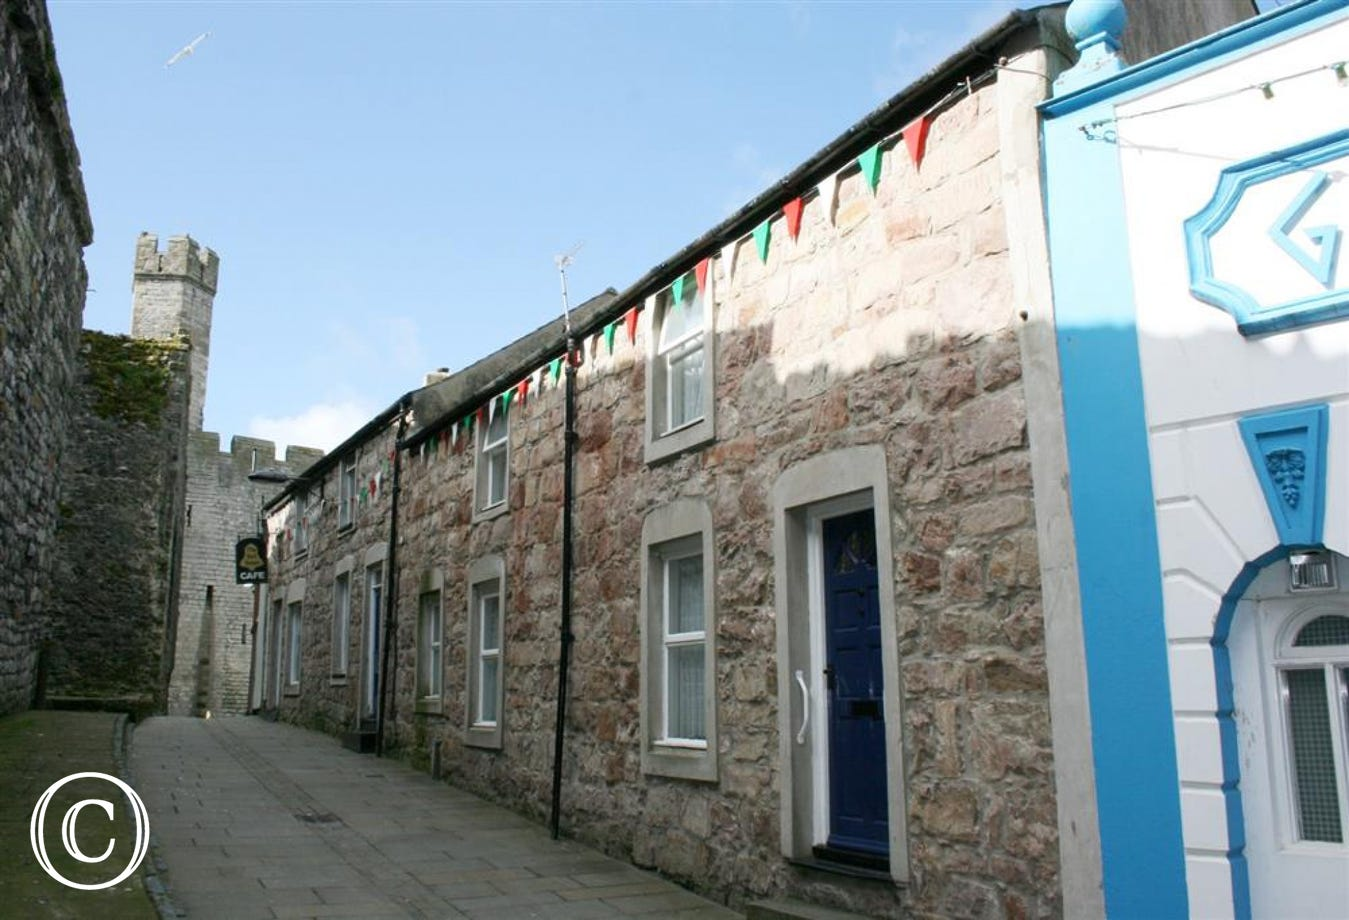 This mid-terraced stone cottage in Caernarfon is situated just inside the castle walls (to left of photo), in a pedestrianised street of cafes, bars and restaurants